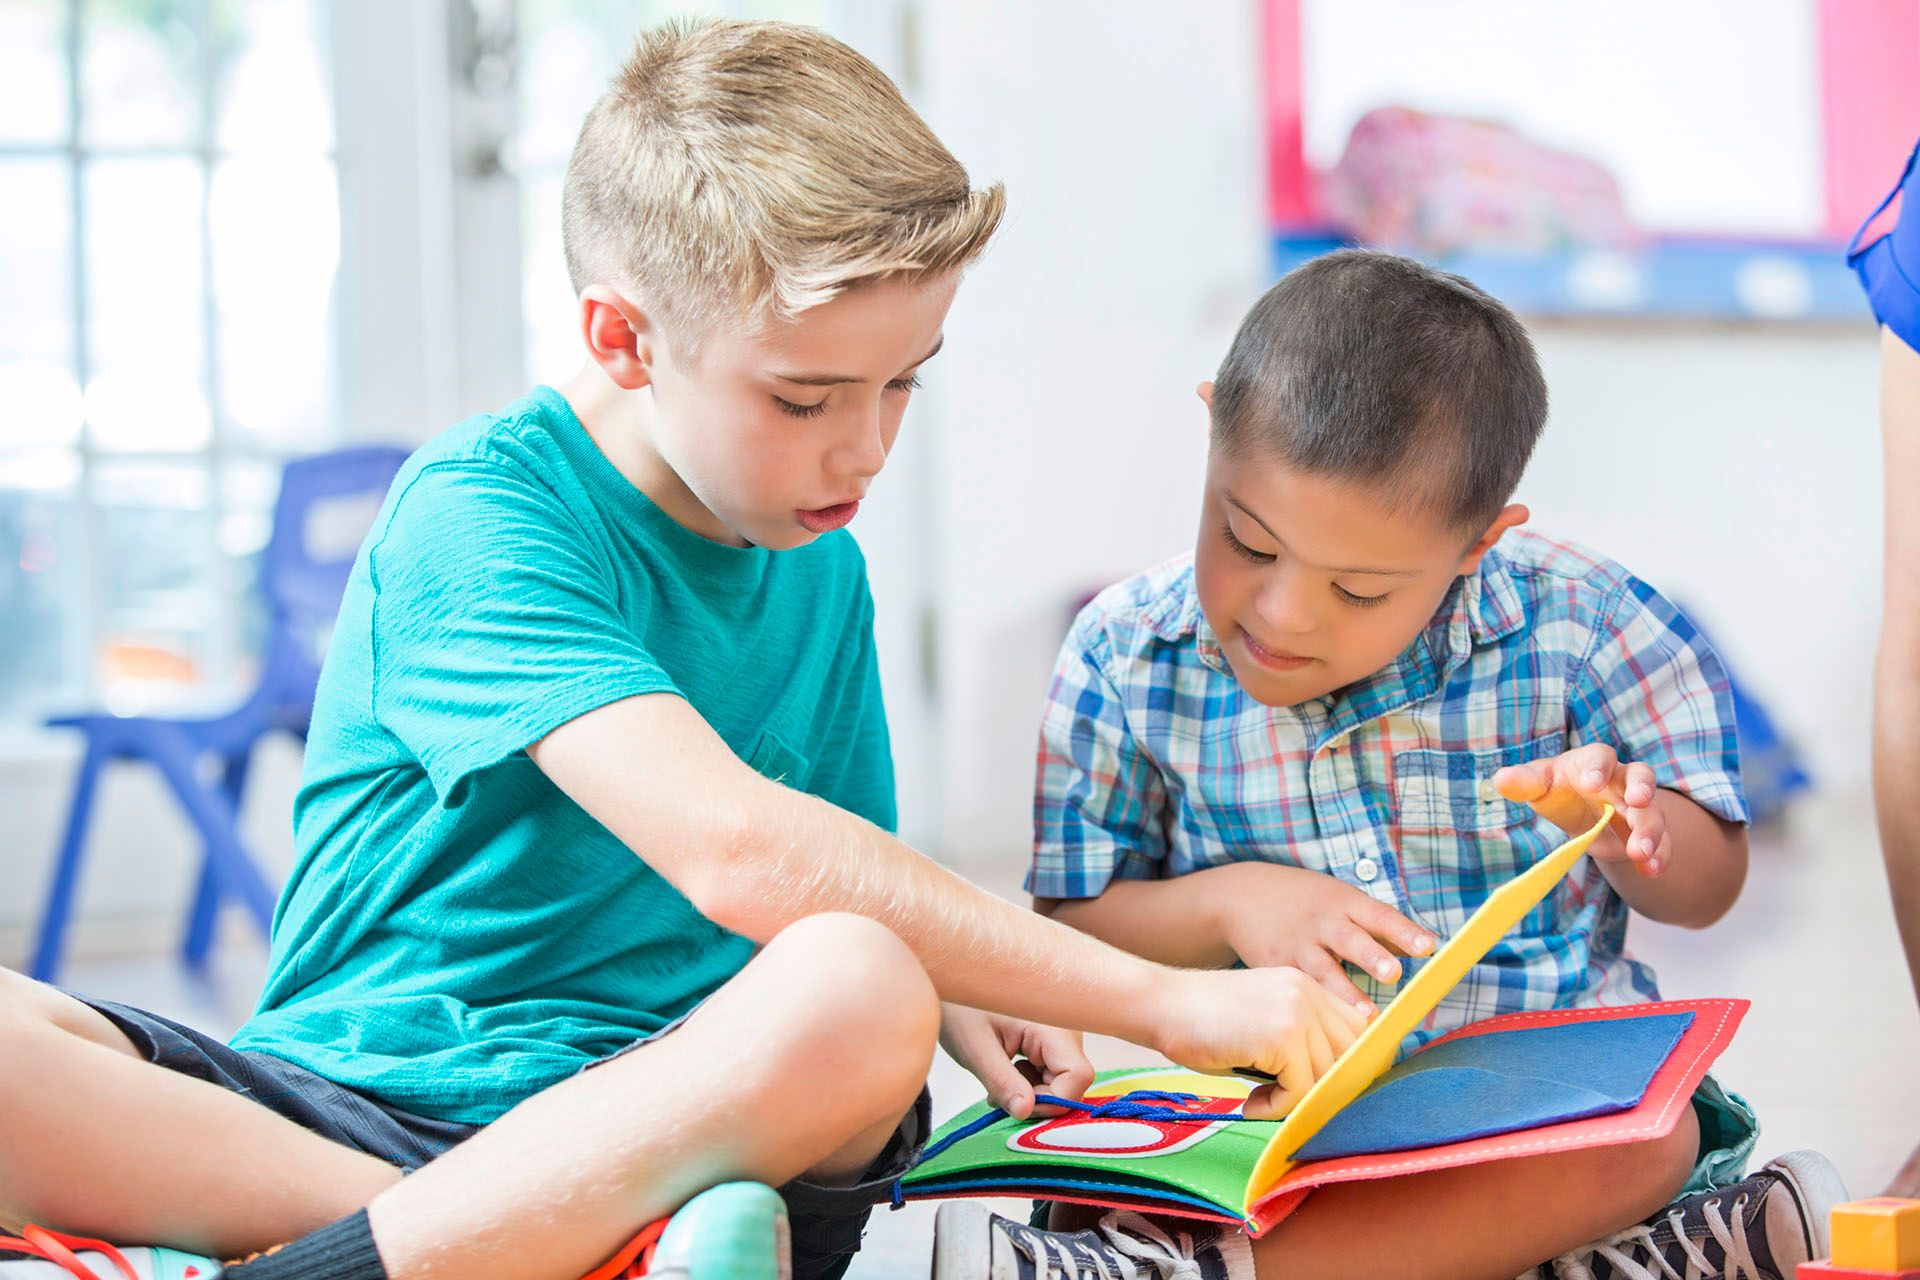 A boy helping his friend with disability to read a book.